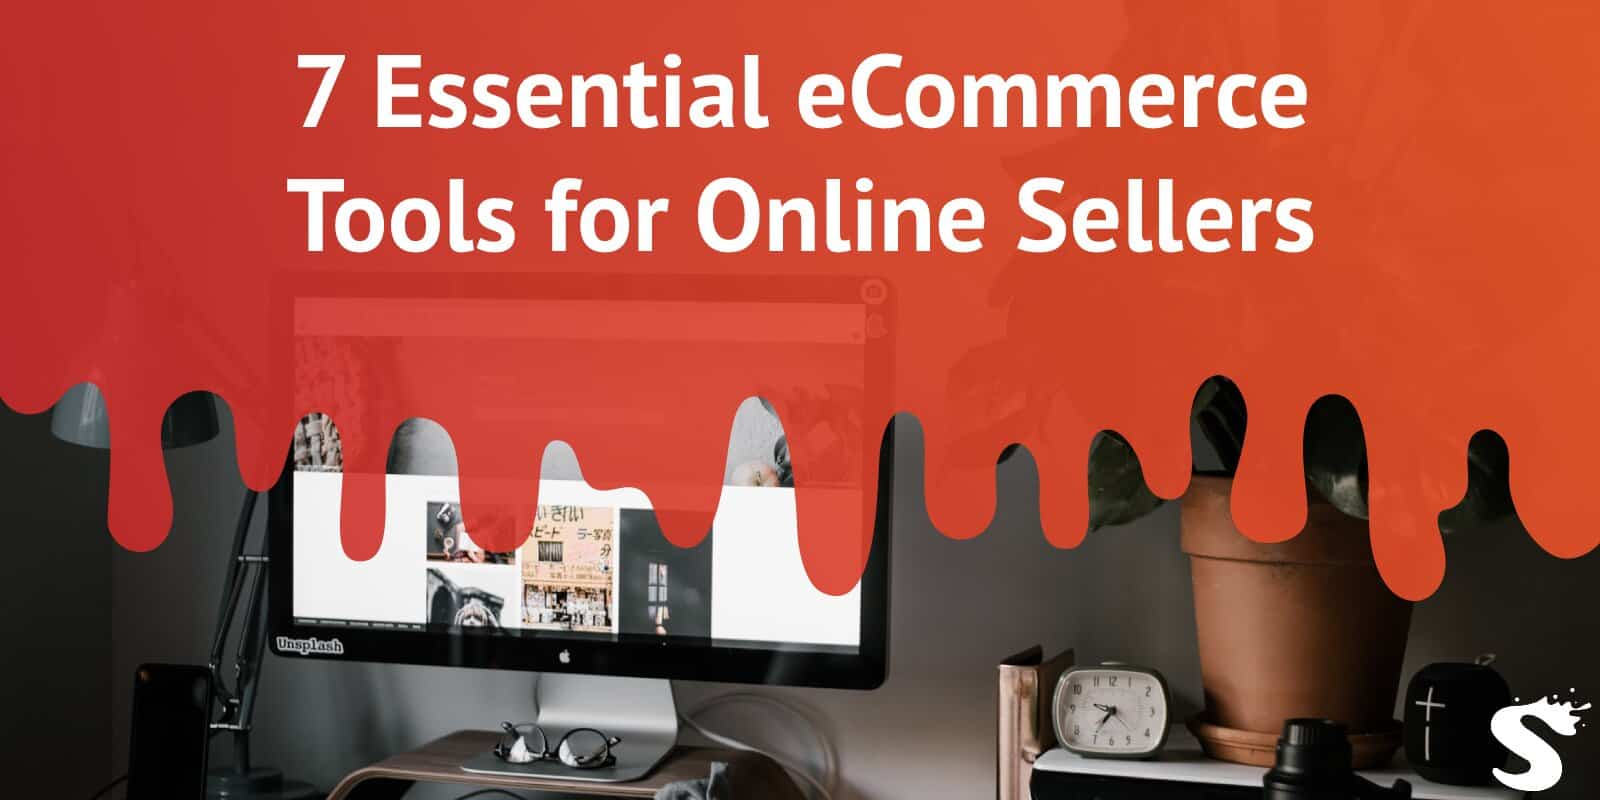 7 Essential eCommerce Tools for Online Sellers